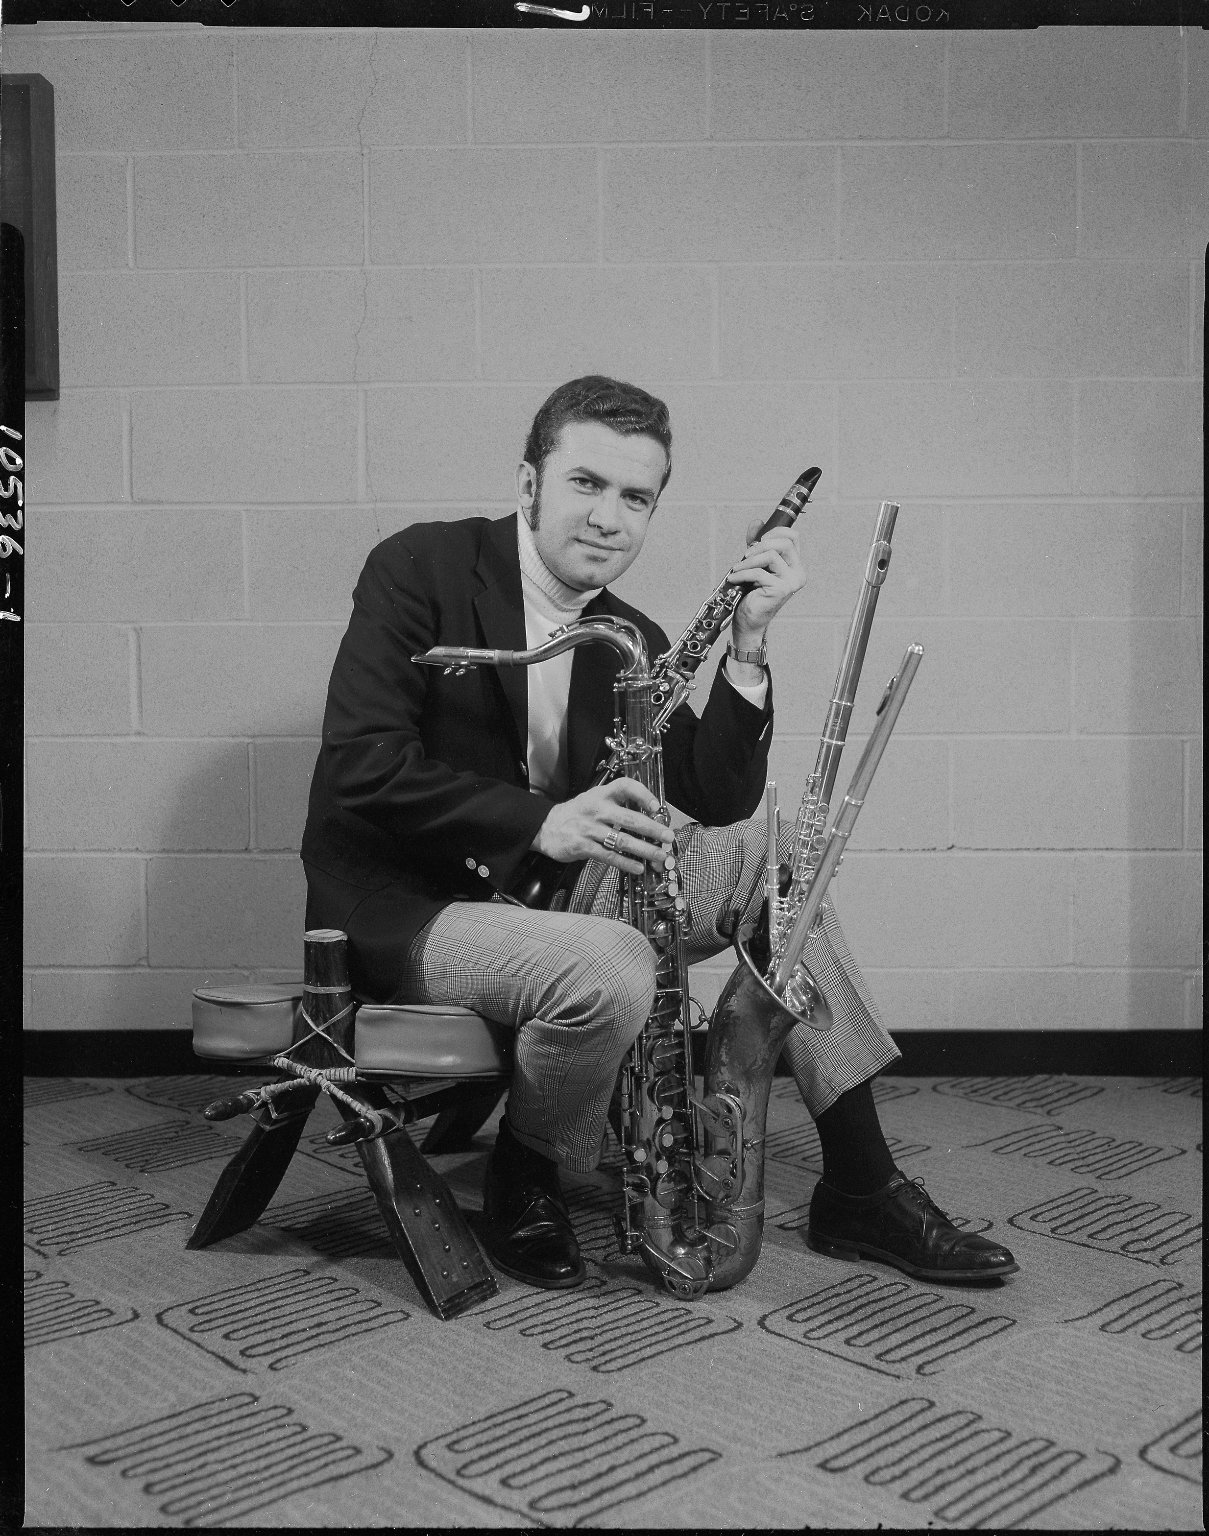 Don Neal's Mr. T-Bone, man posing with musical instruments, nightclub promotion